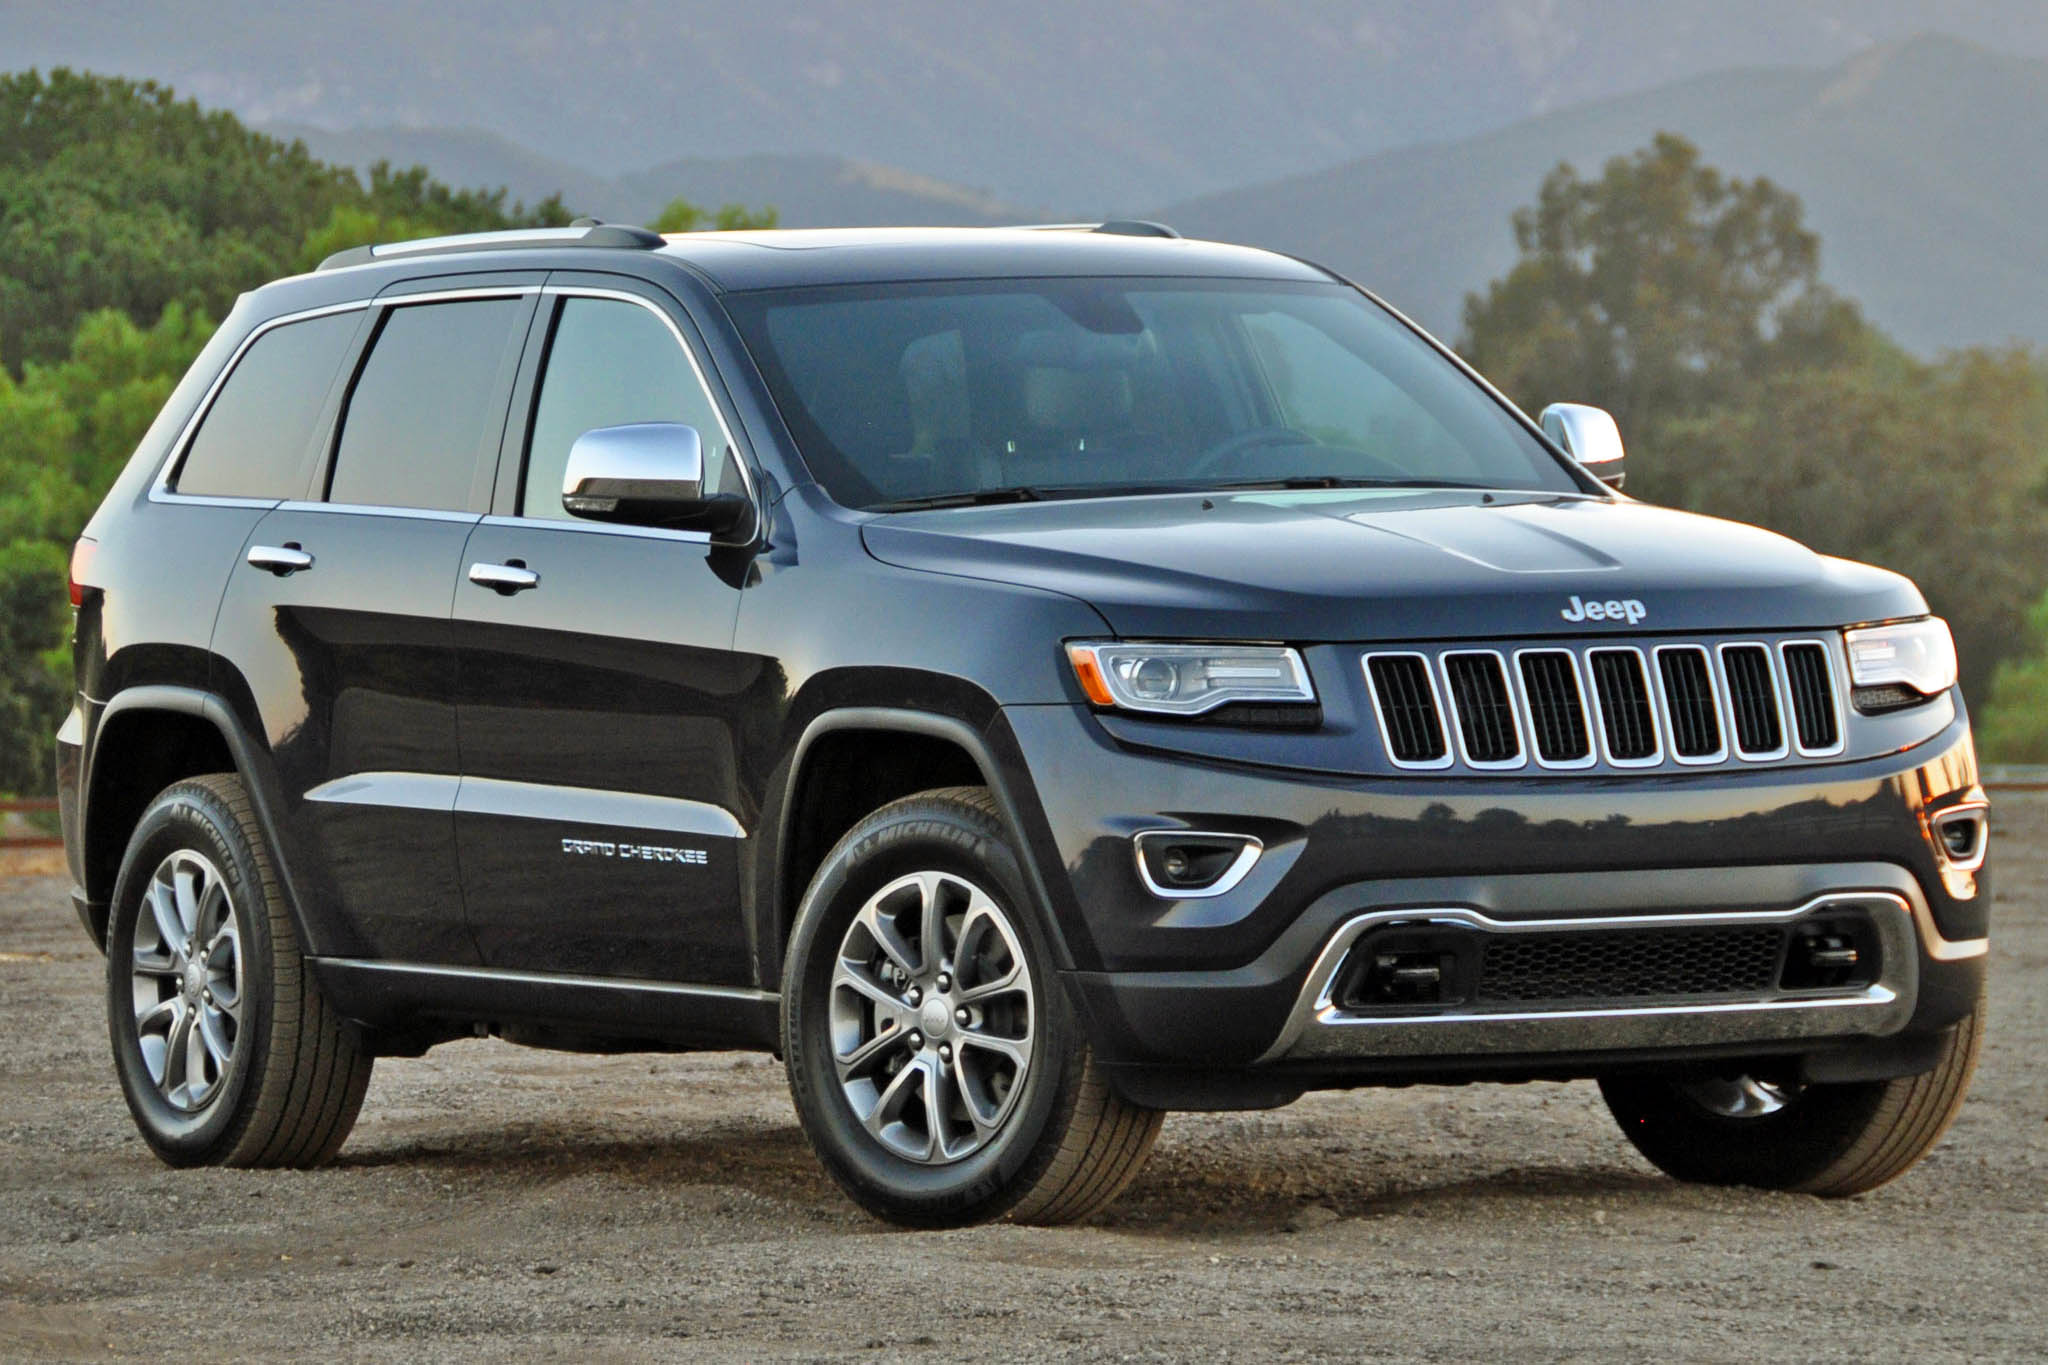 autoweb 2015 august review 2015 jeep grand cherokee ecodiesel 001. Black Bedroom Furniture Sets. Home Design Ideas